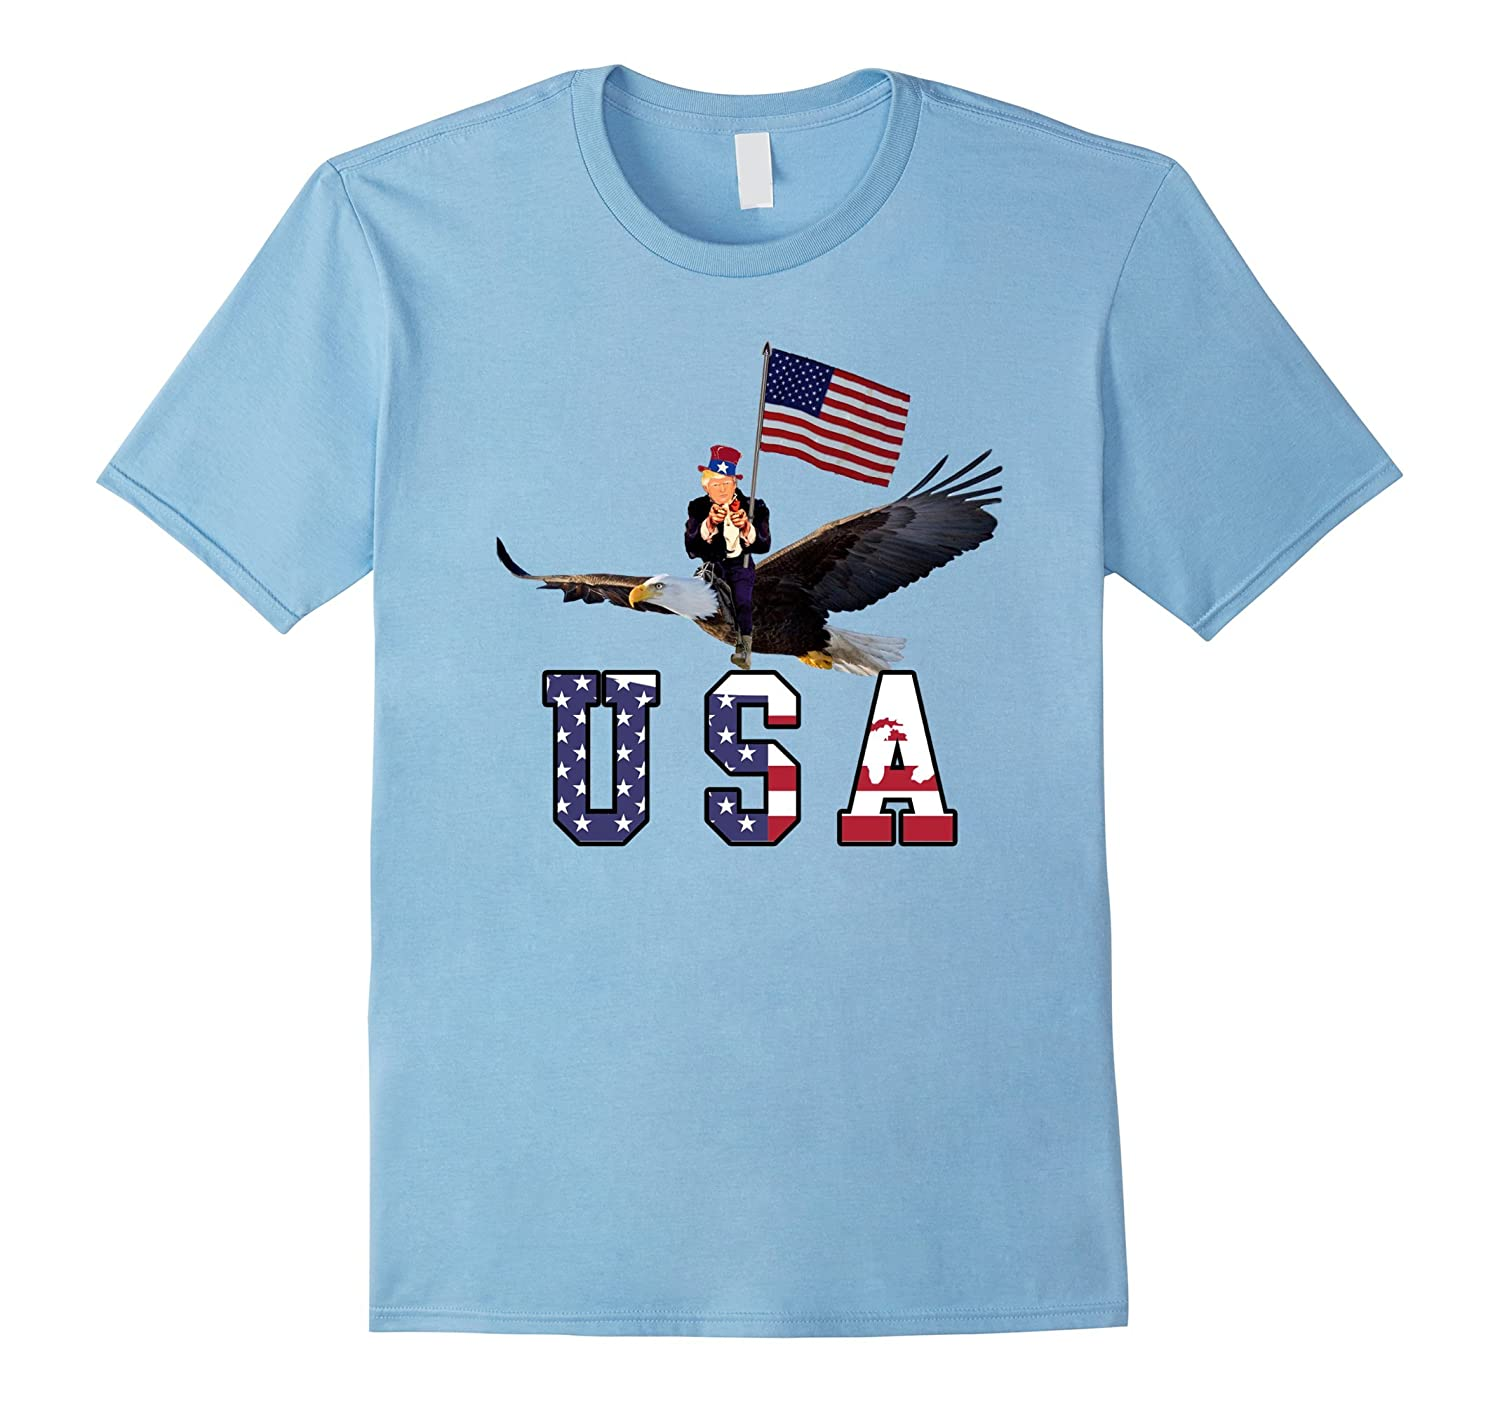 Funny 4th of July Shirt Trump Riding an Freedom Eagle-PL